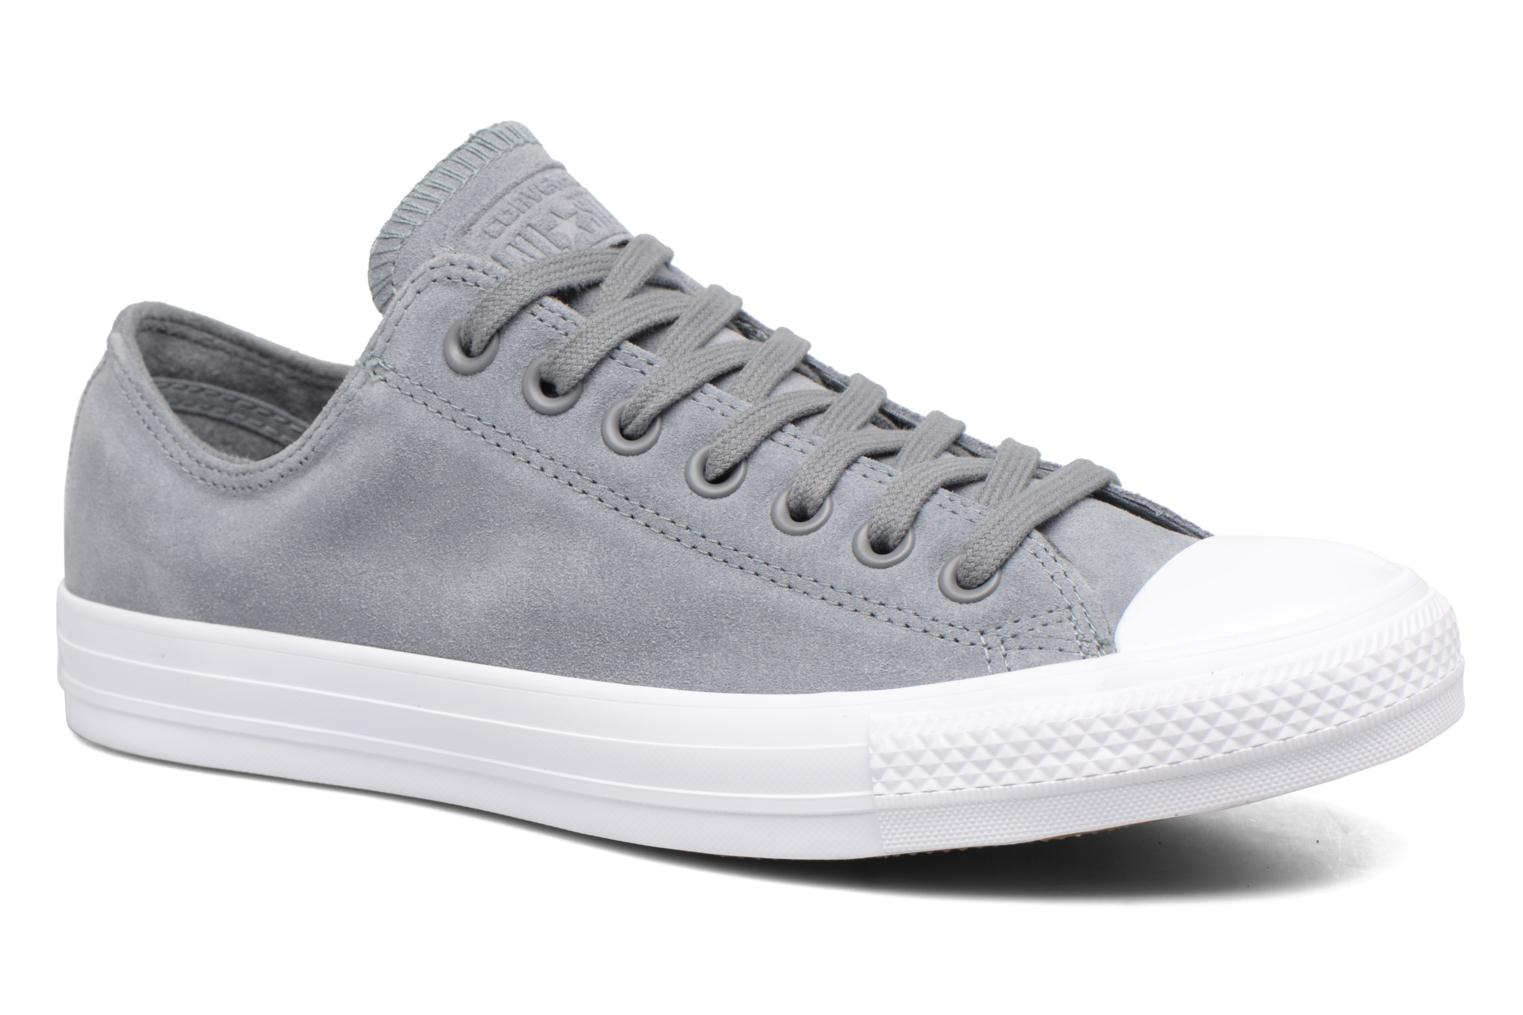 Chuck Taylor All Star Plush Suede Ox Cool Grey/Cool Grey/White